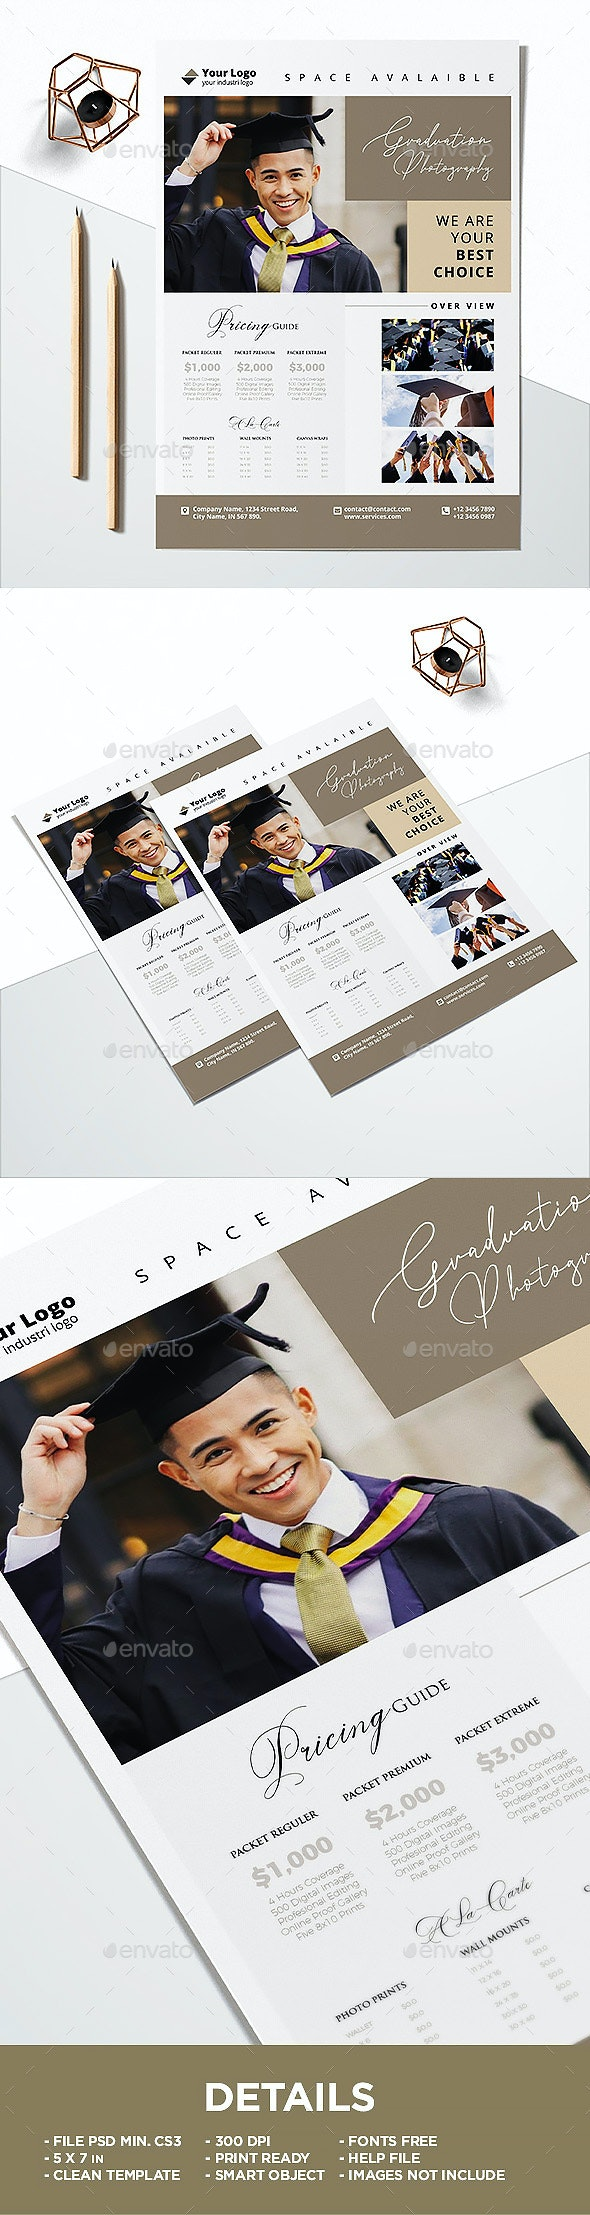 Price Guide Graduate Photography Flyer Template - Corporate Flyers